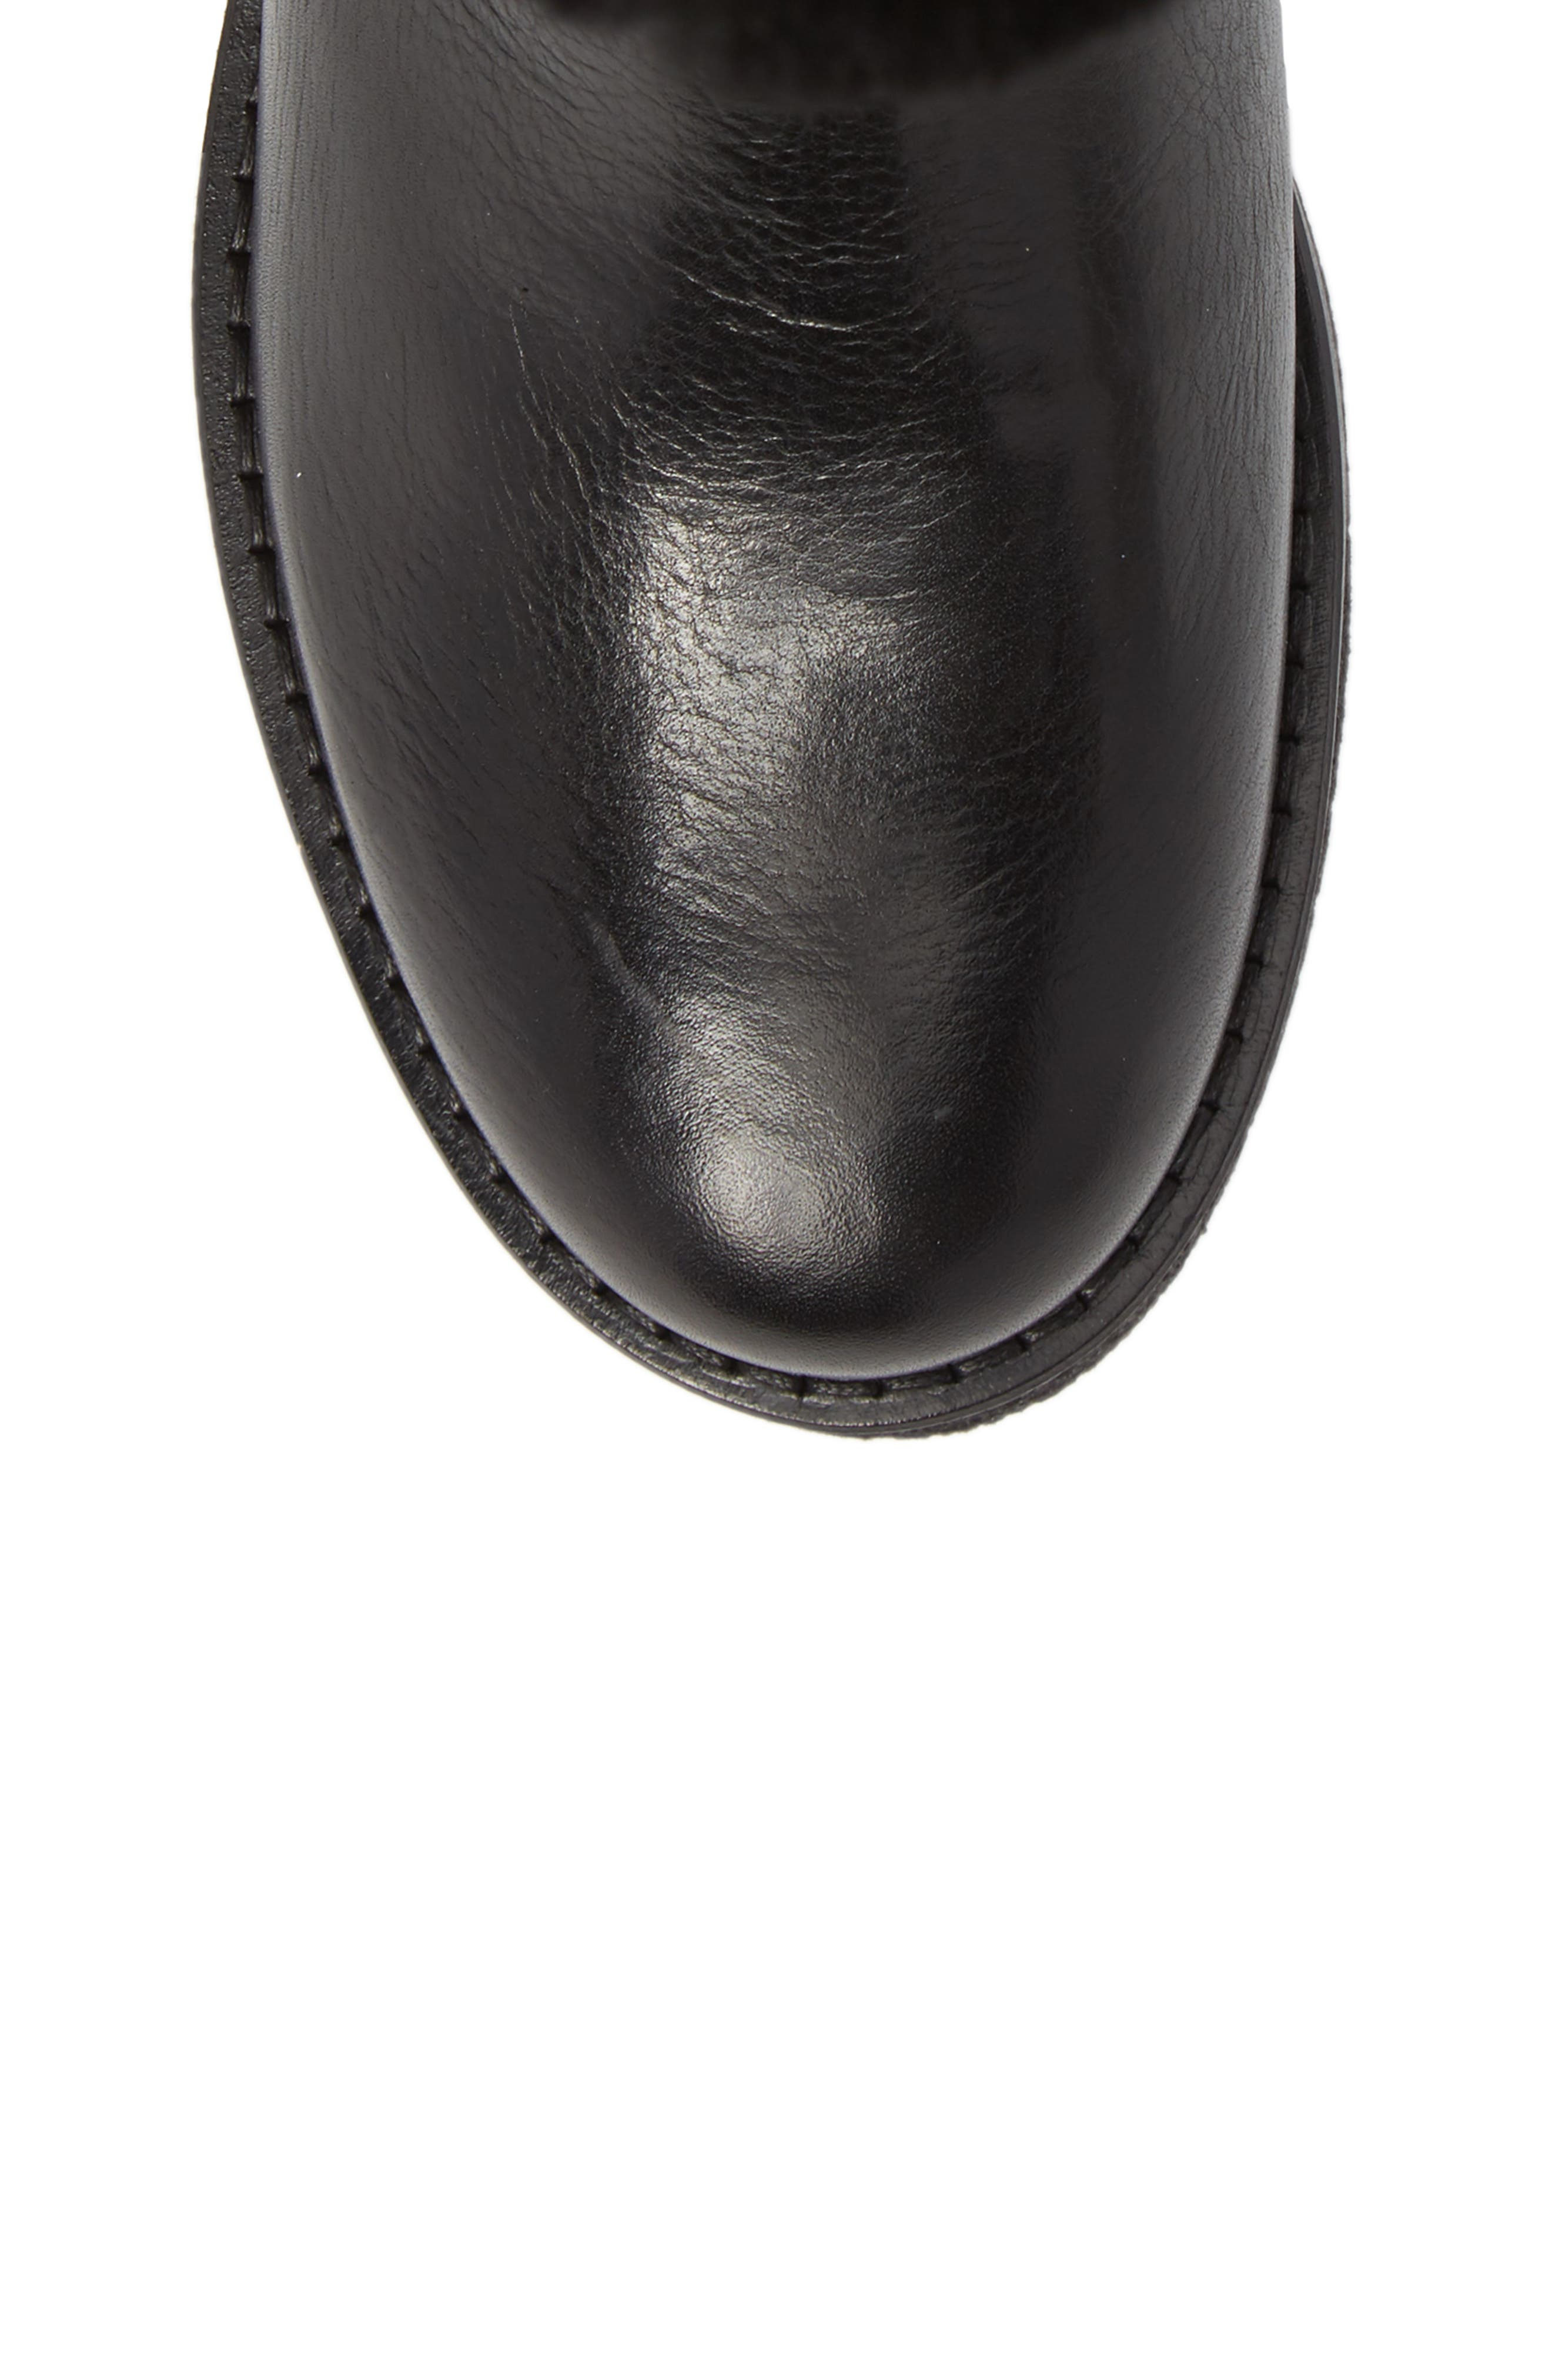 Amarillo Waterproof Insulated Snow Boot,                             Alternate thumbnail 5, color,                             Black Fur Leather